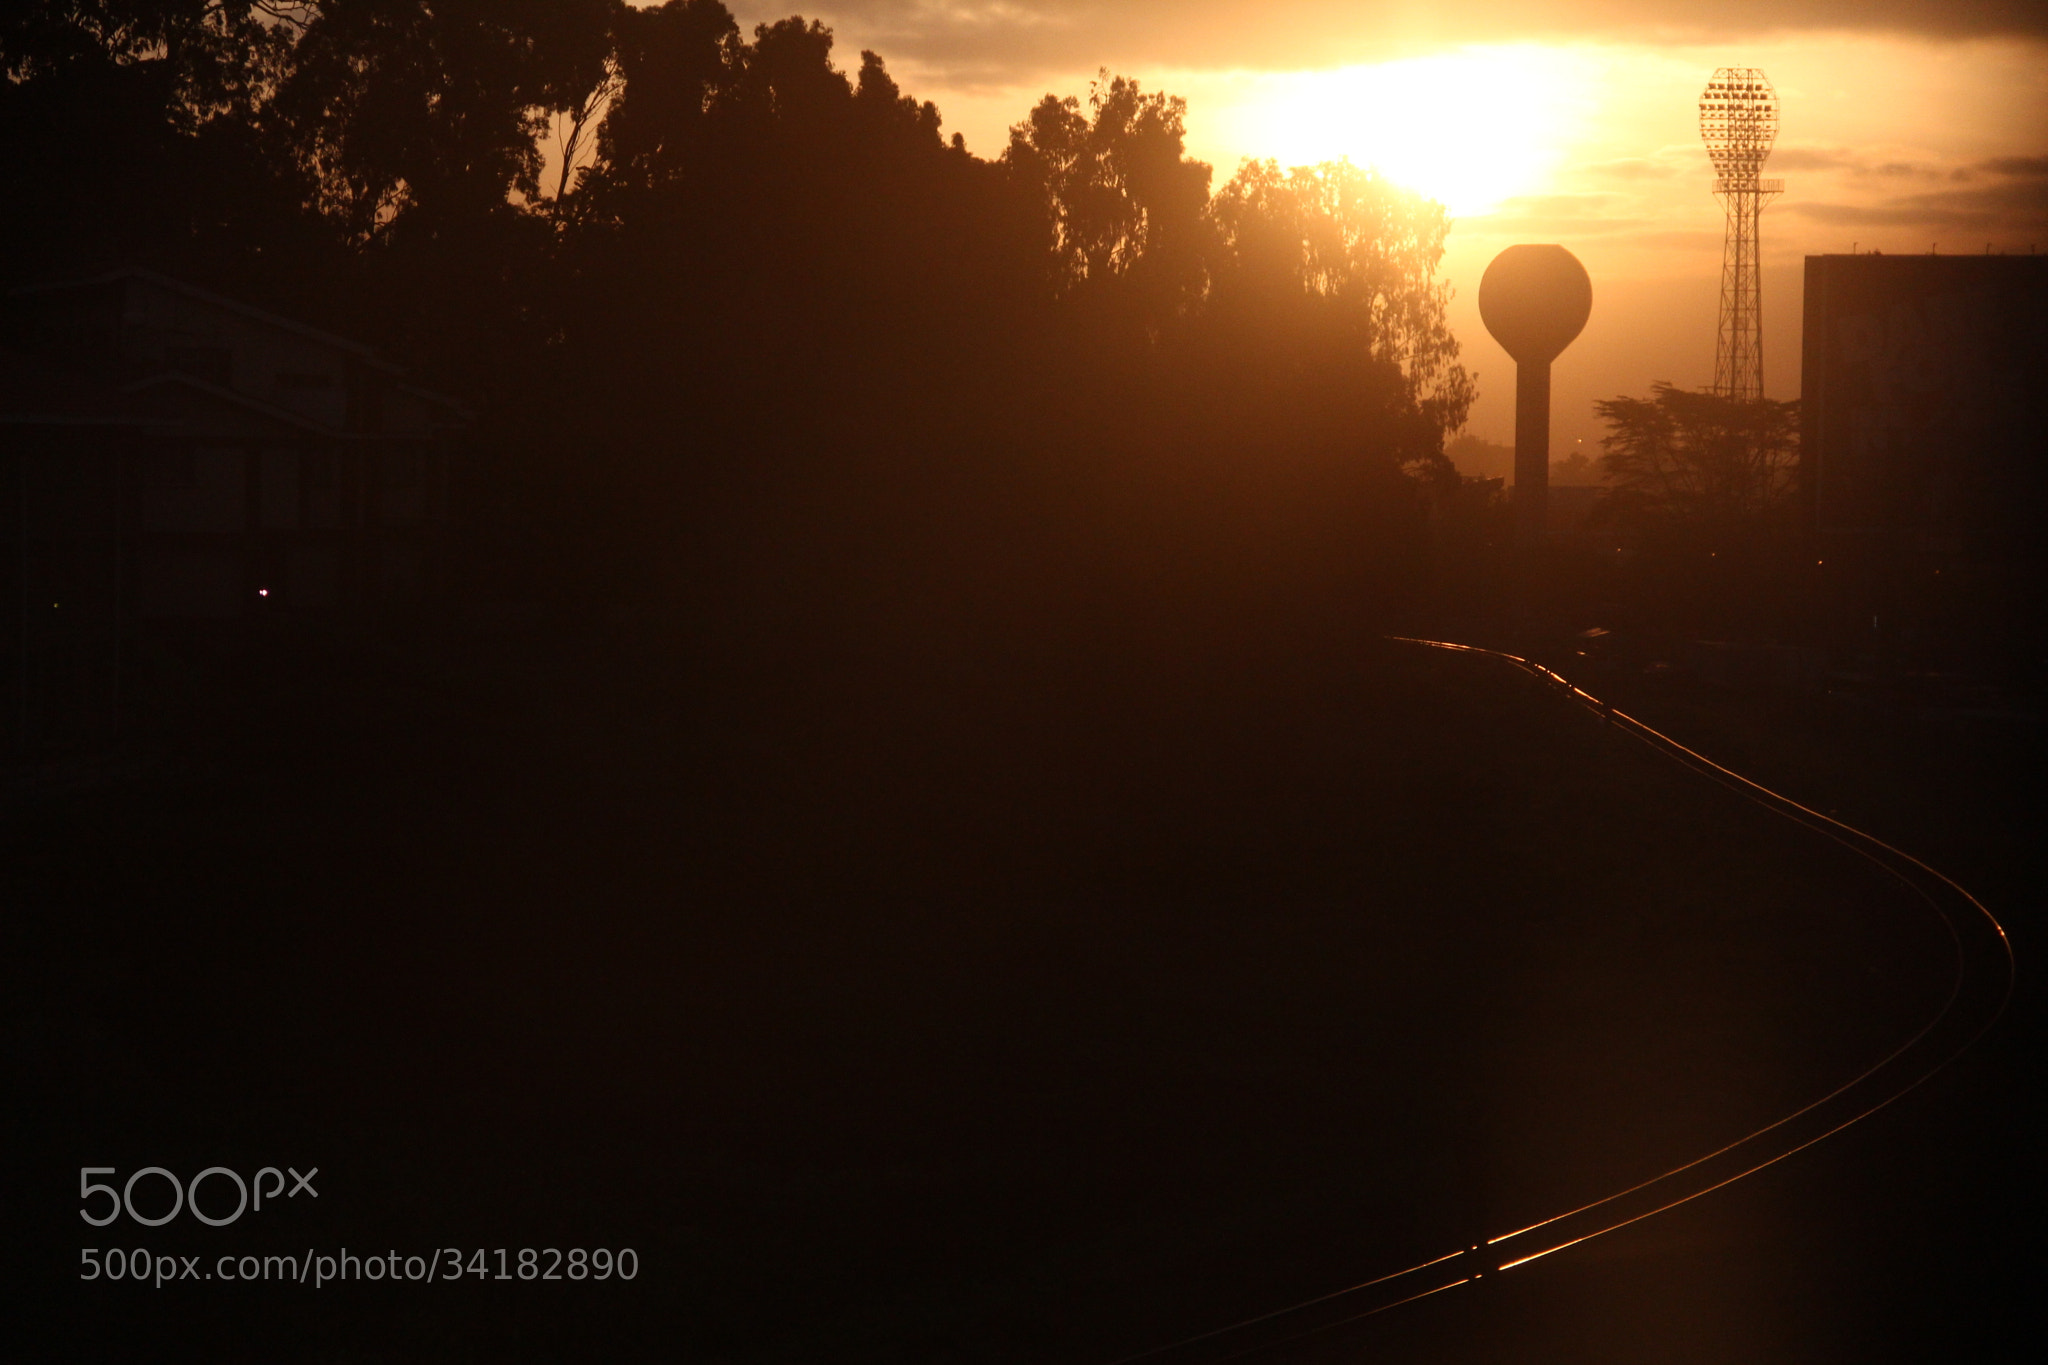 Photograph sunny train tracks by wambuikisienya on 500px